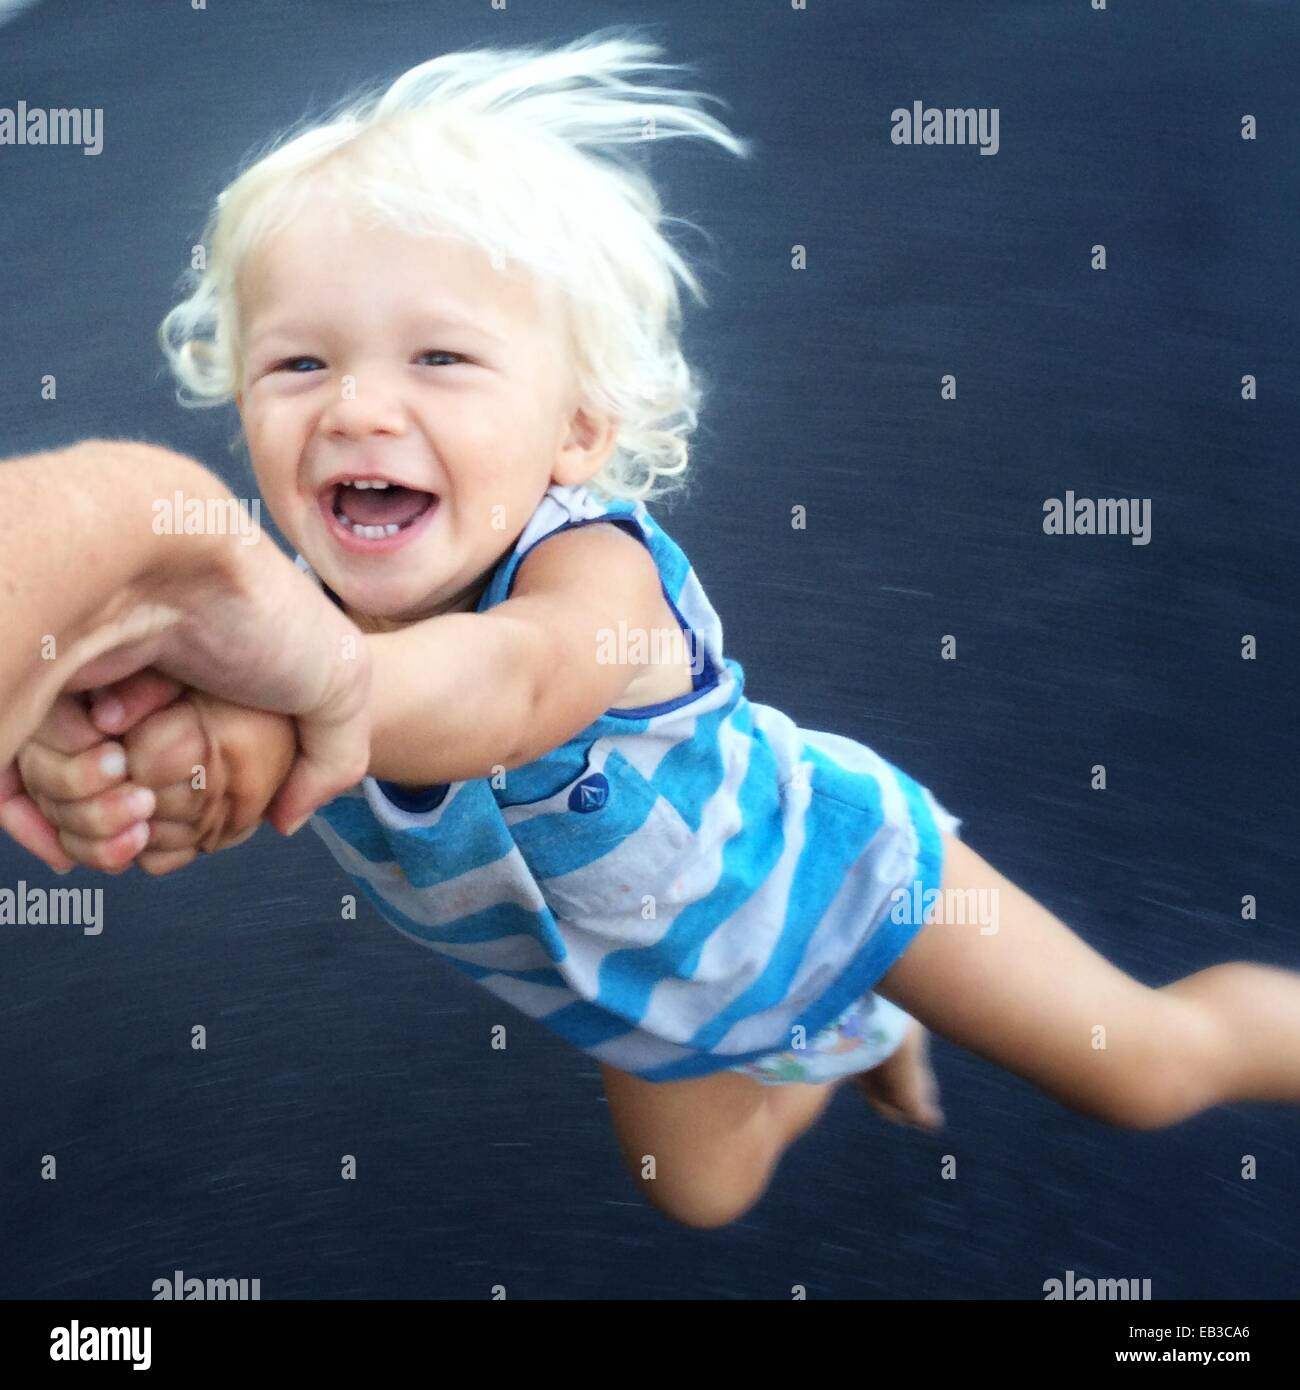 Toddler being spun around - Stock Image